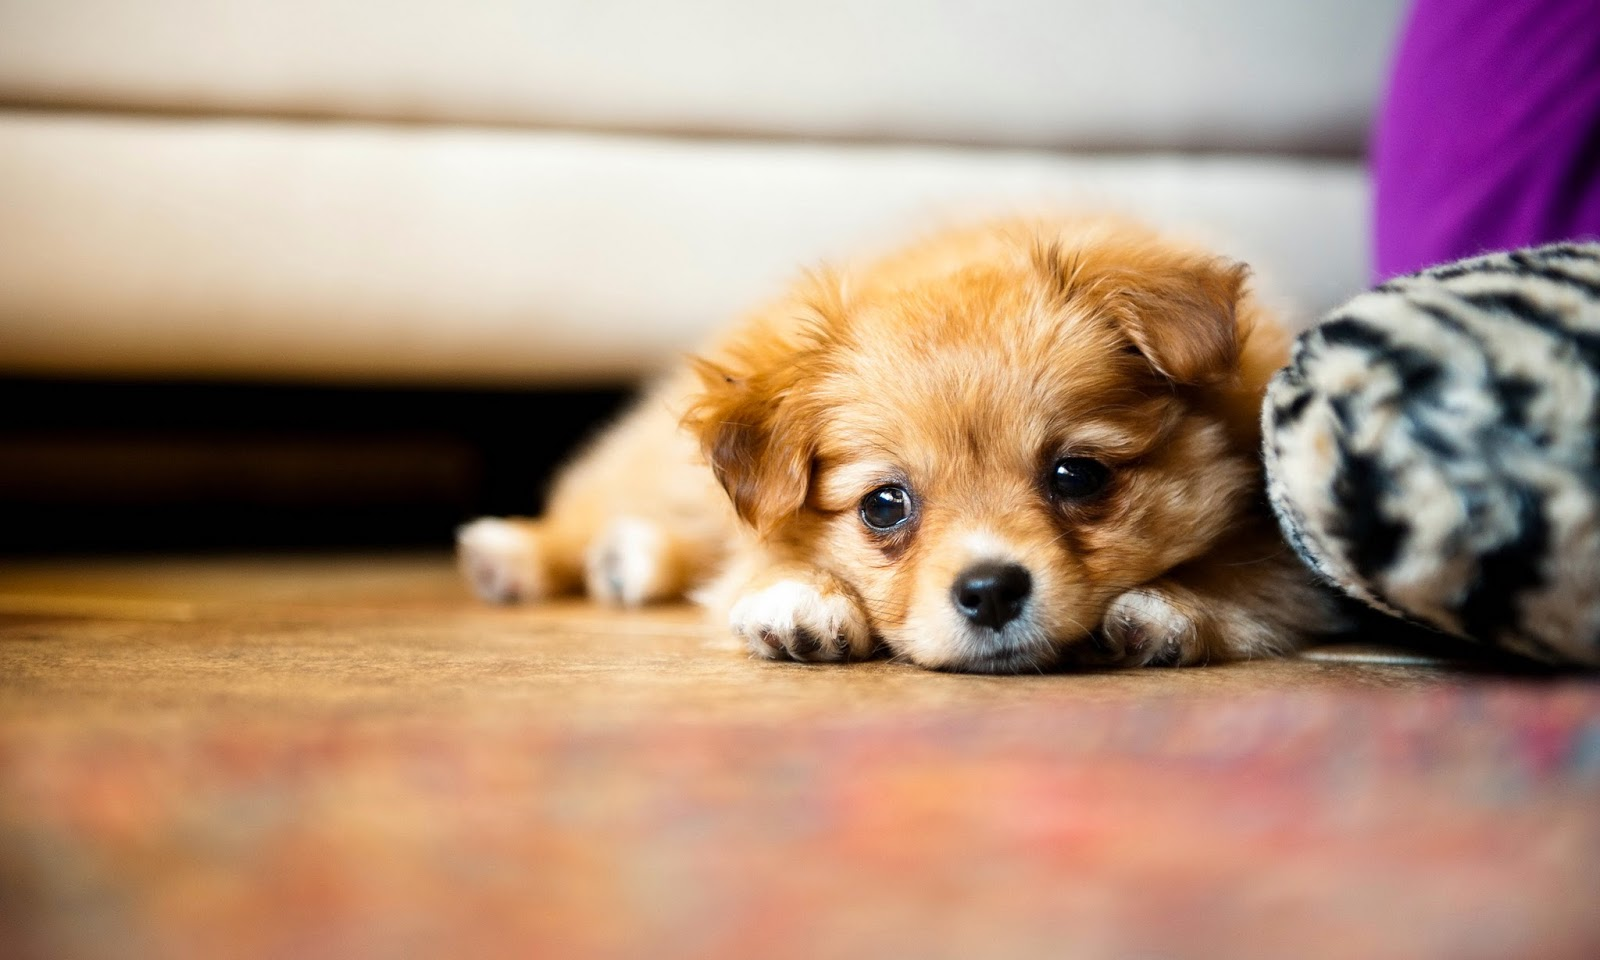 Puppy Photography 1080p Wallpapers | HD Wallpapers (High Definition) | Free Background